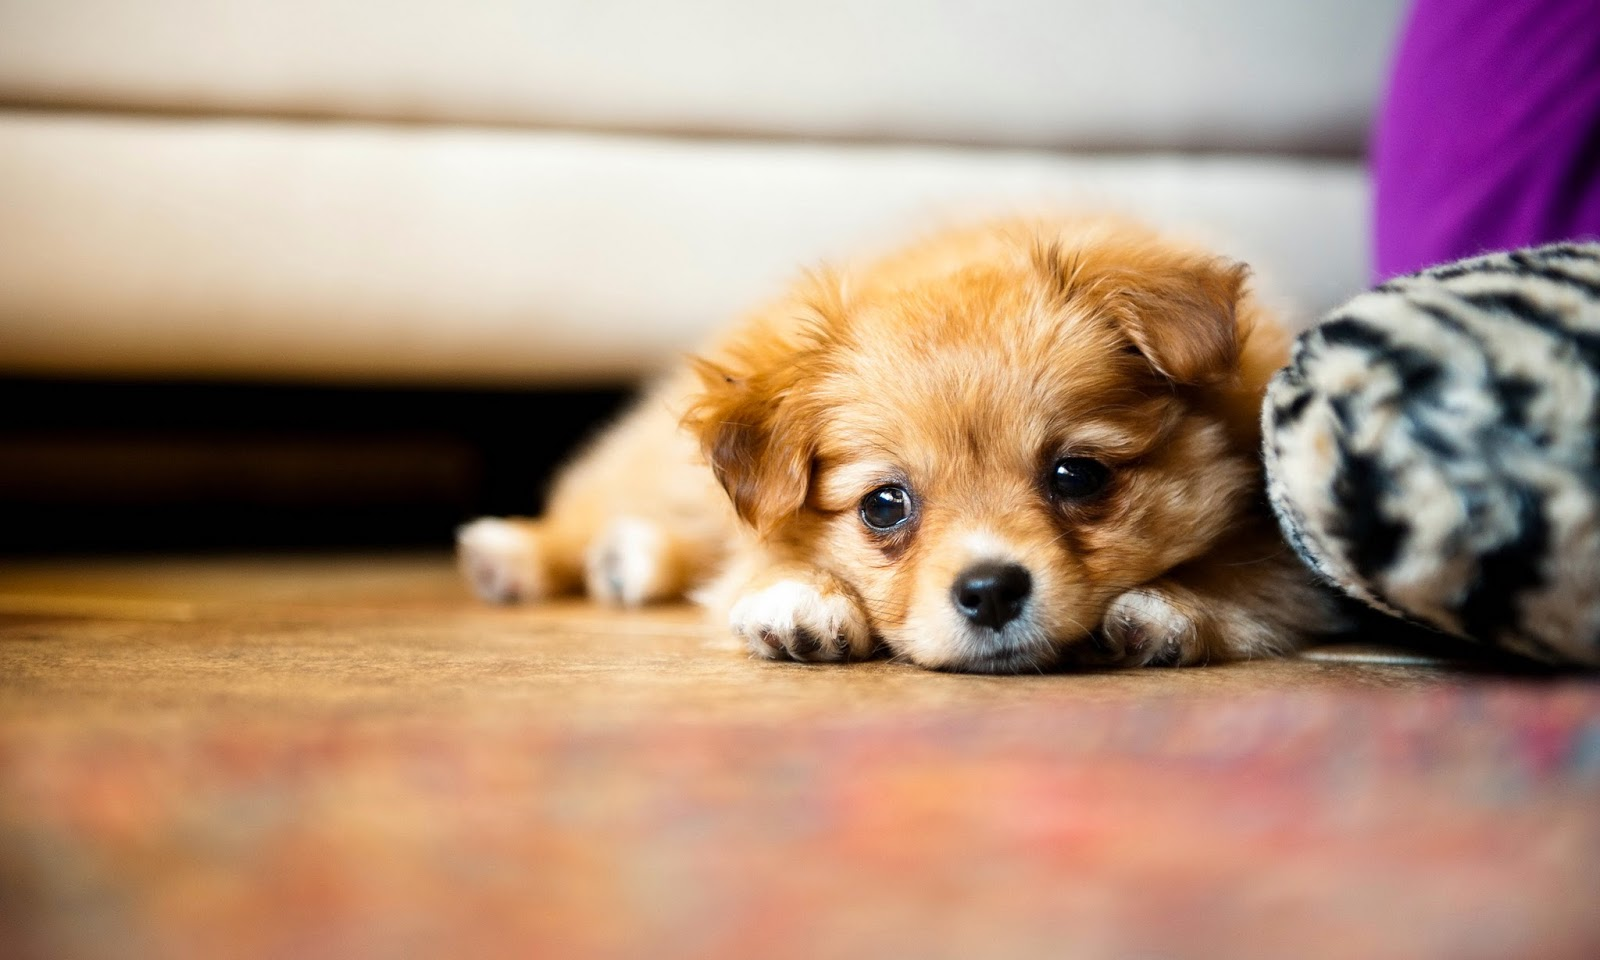 Puppy Photography 1080p Wallpapers | HD Wallpapers (High Definition) | Free Background